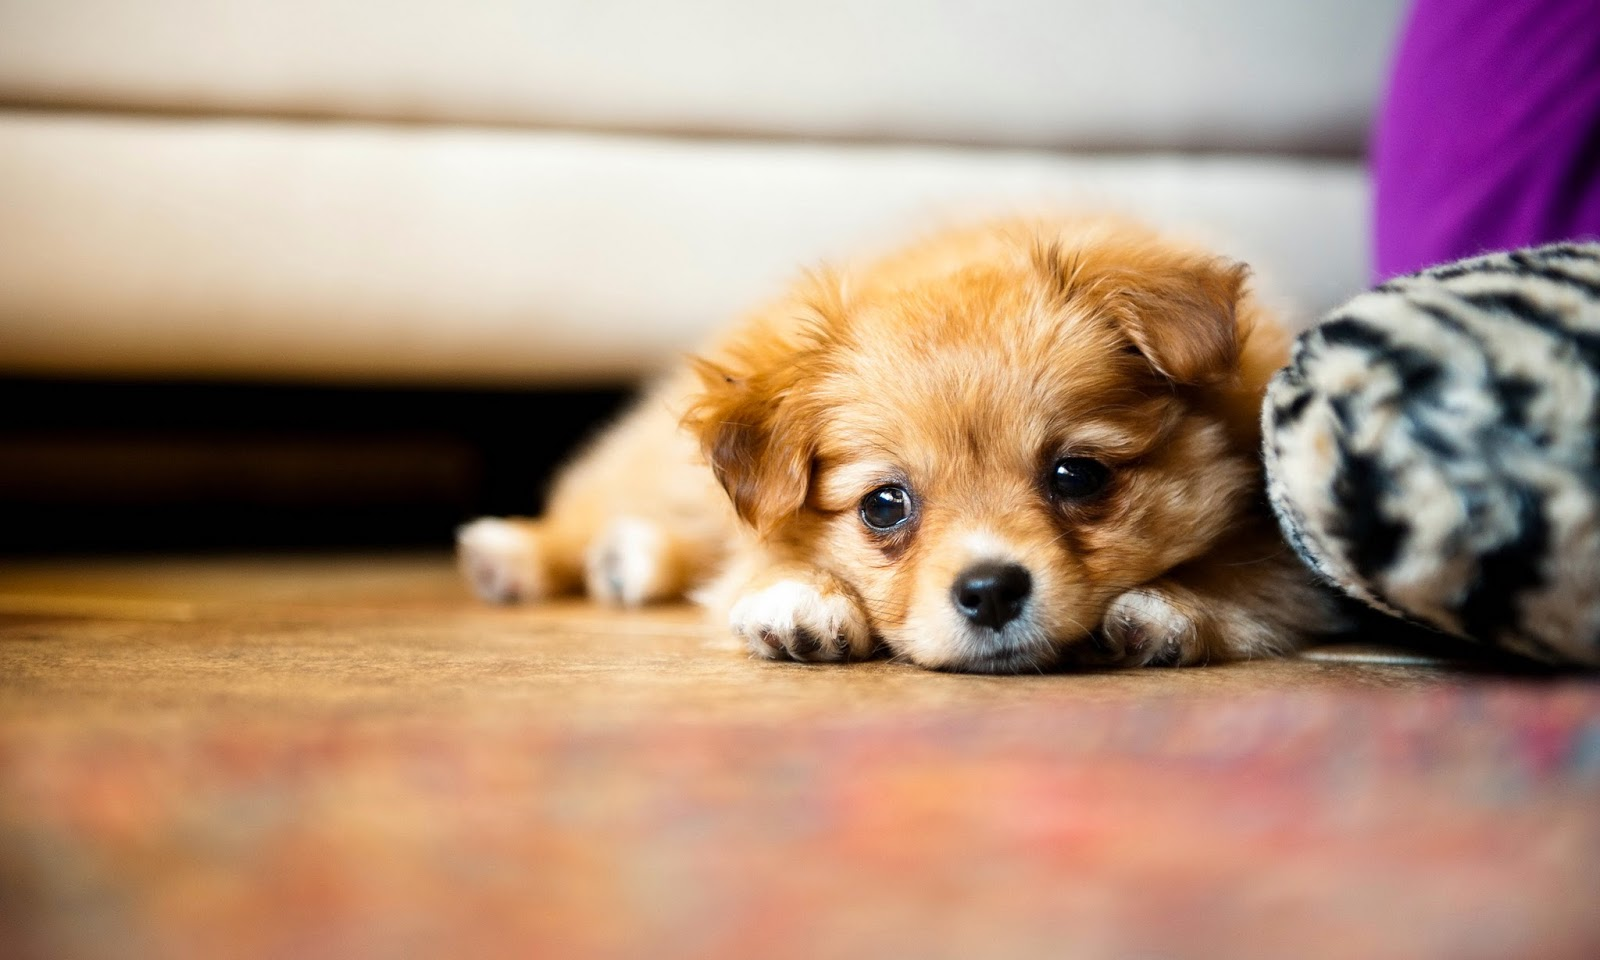 Puppy Photography 1080p Wallpapers | HD Wallpapers (High Definition) | Free Background